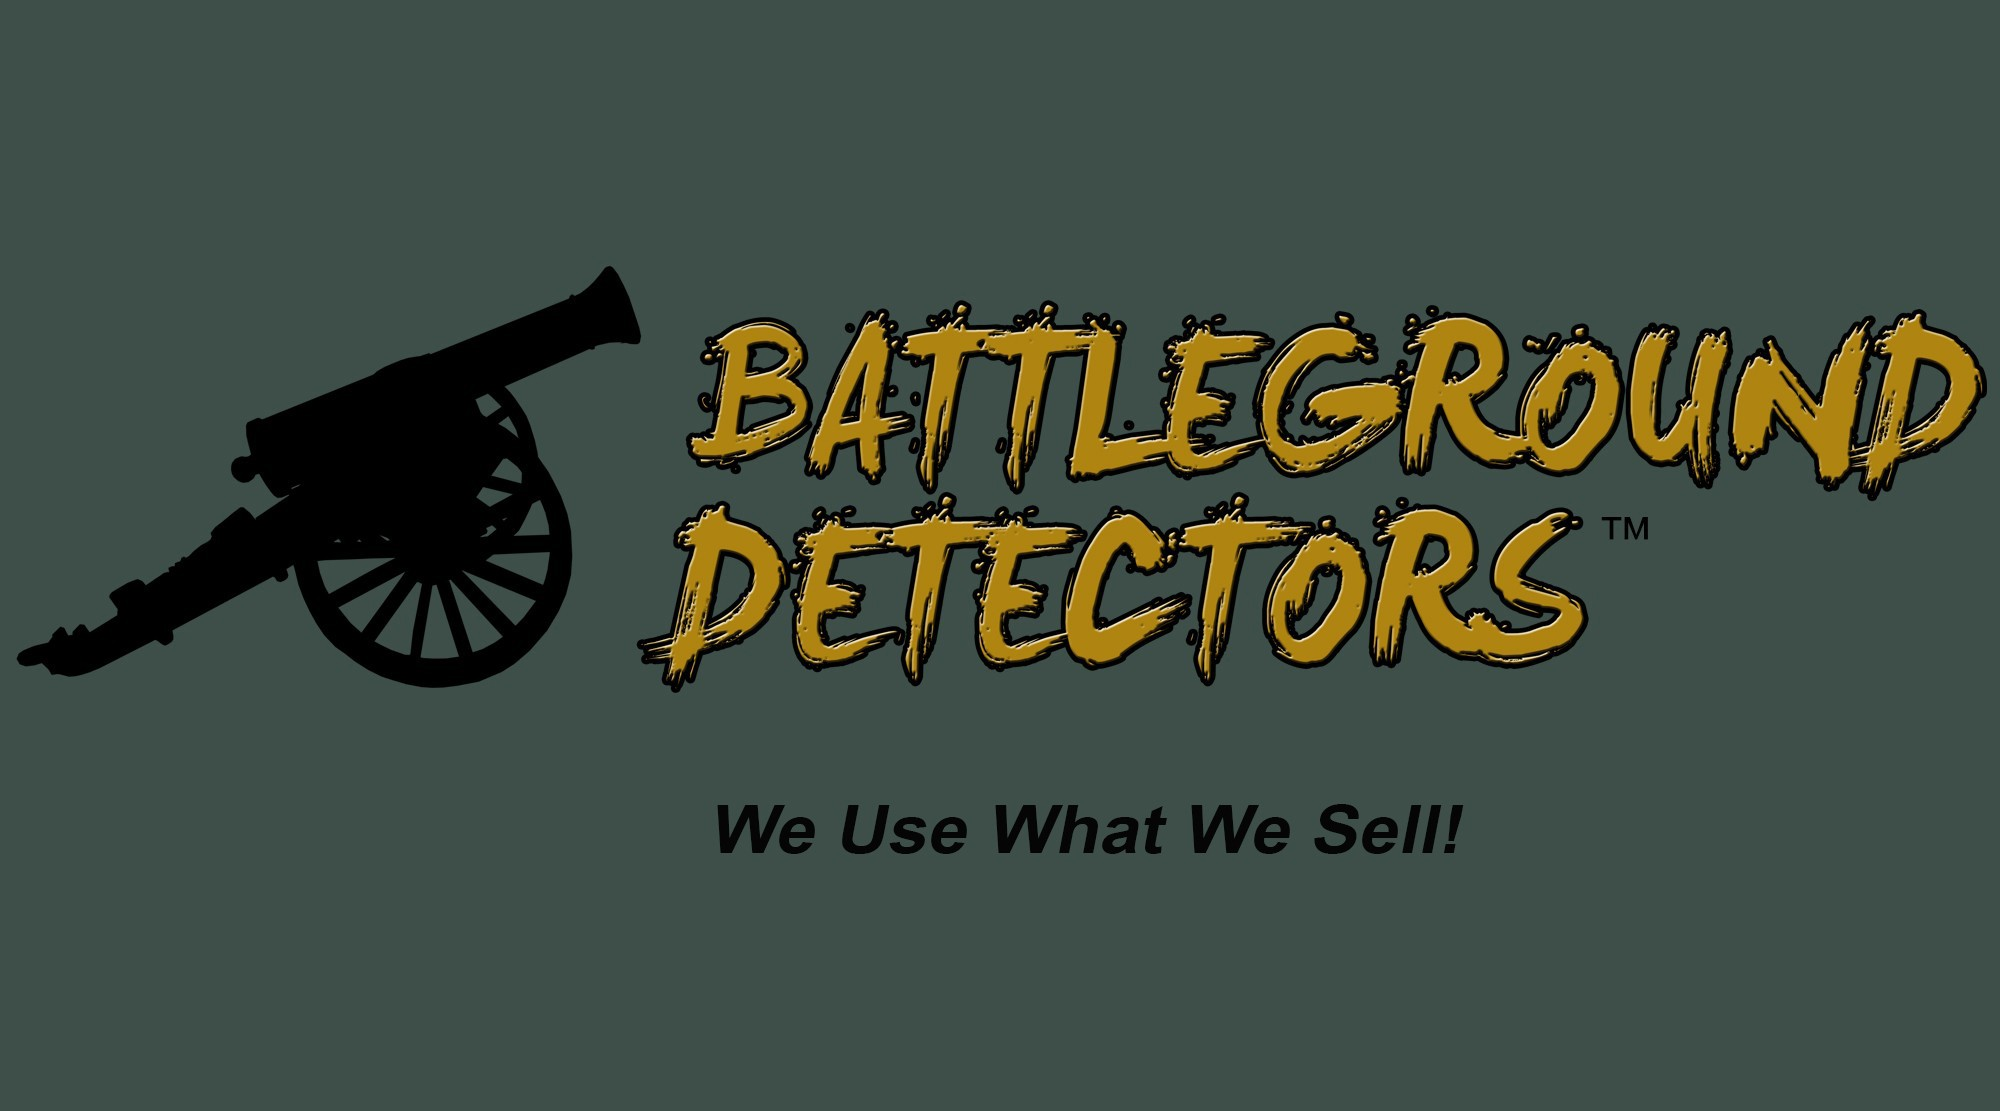 Battleground Detectors